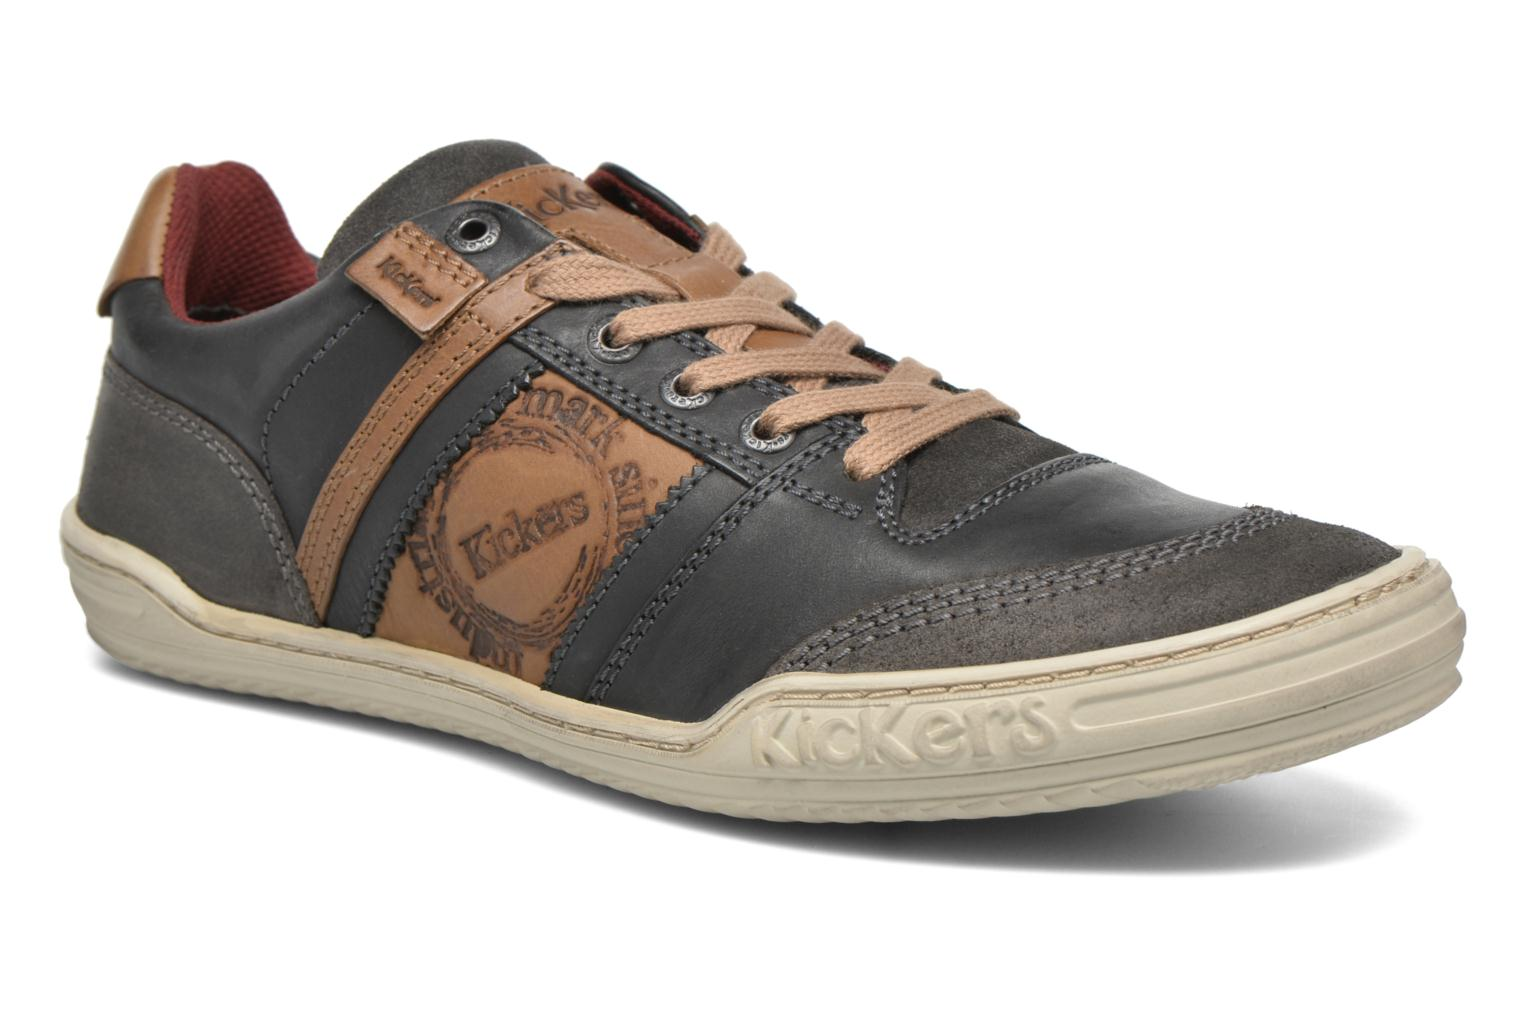 Baskets Kickers Jexplore Gris vue détail/paire